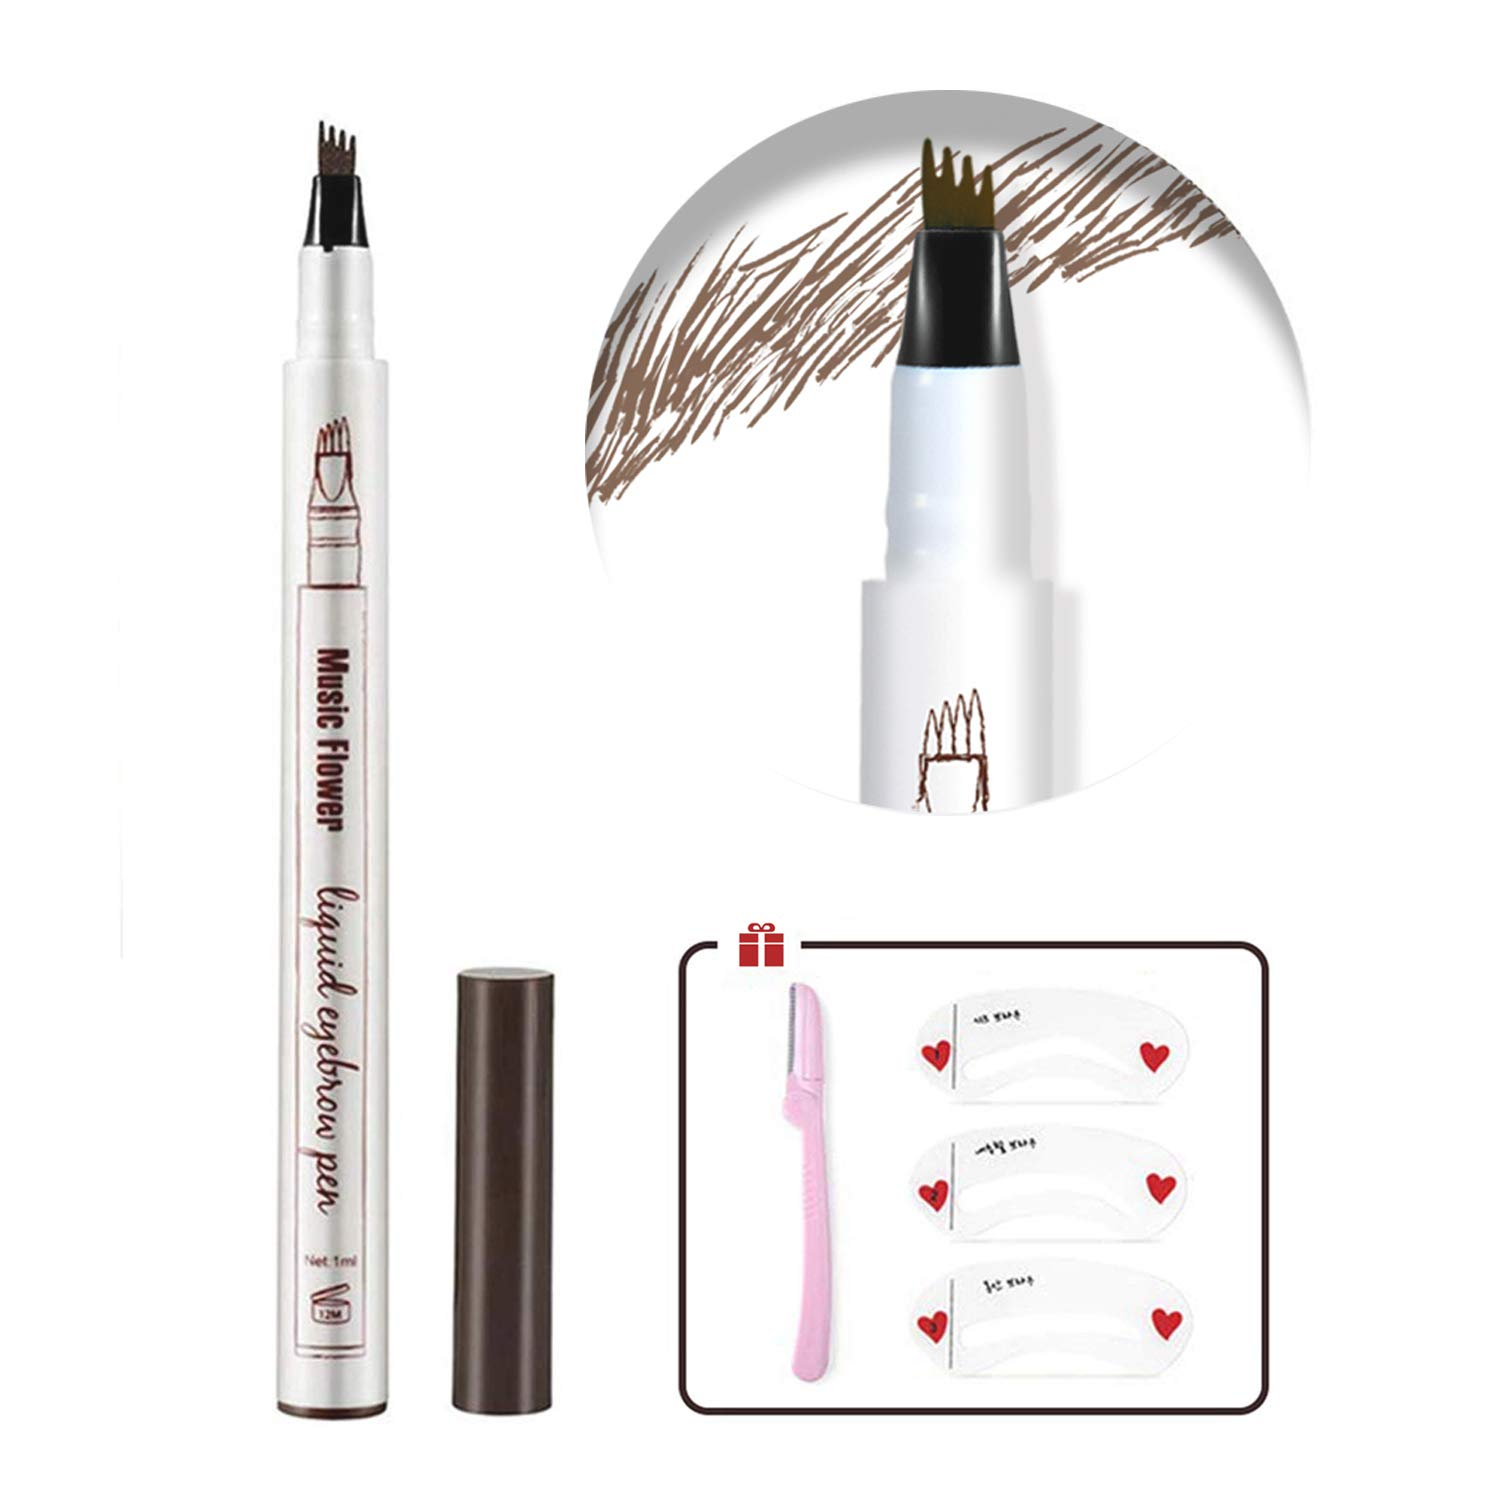 Eyebrow Tattoo Pen,Microblading Eyebrow Pencil Waterproof Microblade Brow Pen Make Up with a Micro-Fork Tip Applicator Creates Natural Looking Brows Effortlessly and Stays on All Day (4# Black)